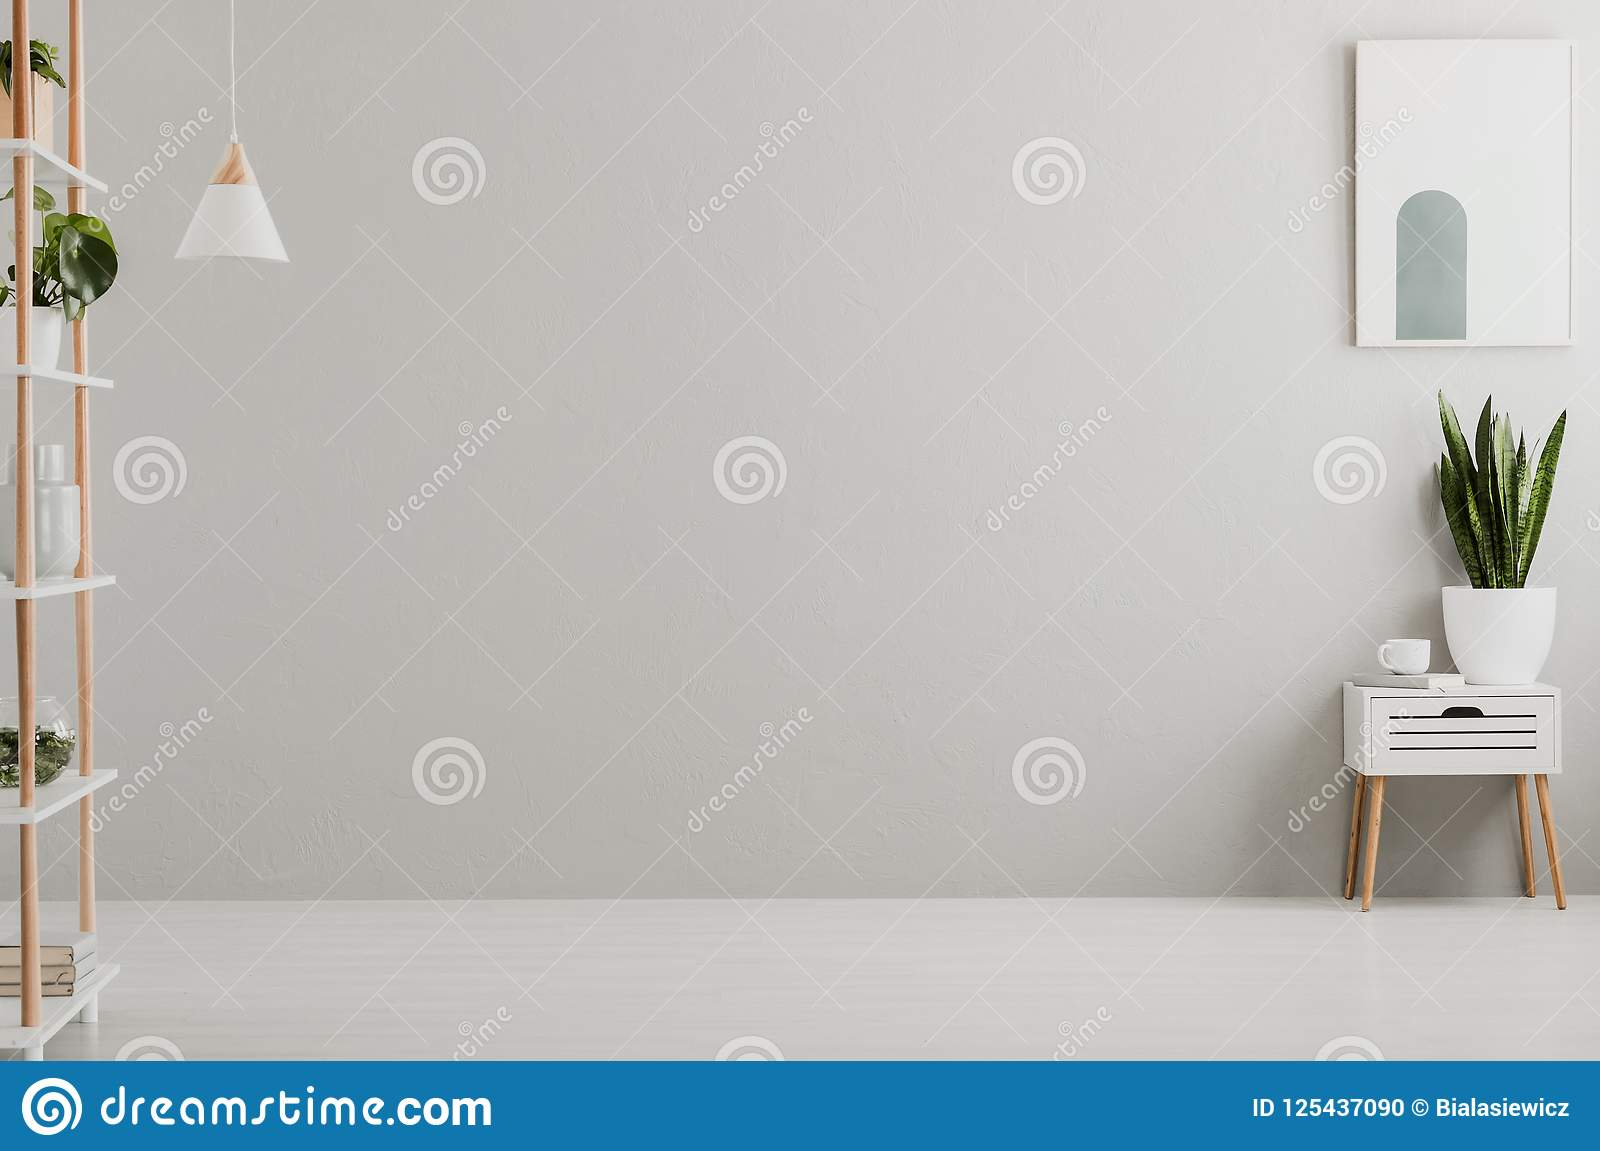 Real photo of light grey living room interior with fresh plants, book and tea cup on cupboard and simple poster on the wall, Place